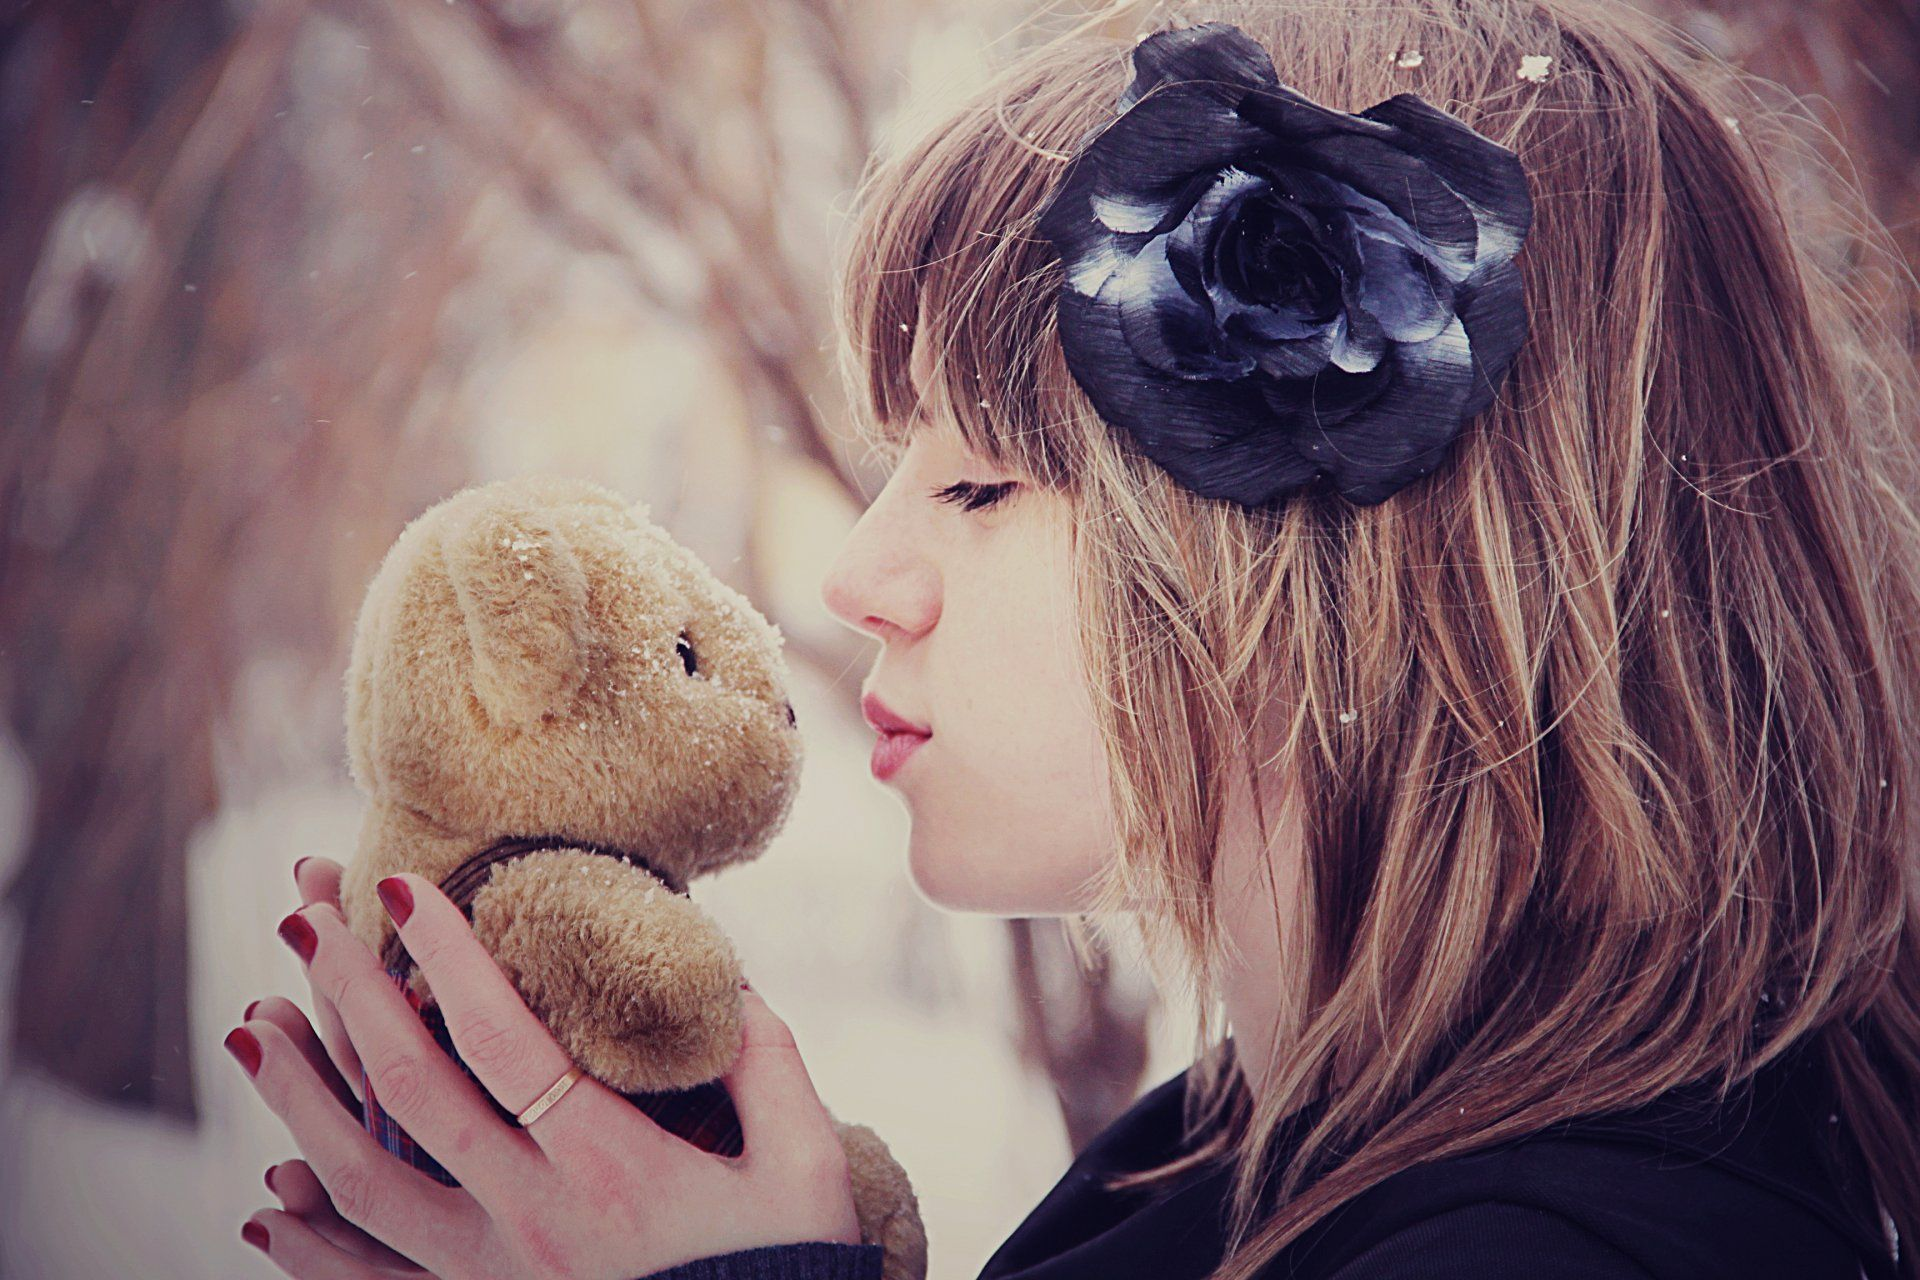 Toys wallpaper images  mood mood girl kiss bear toys flower snow winter HD wallpaper  Art